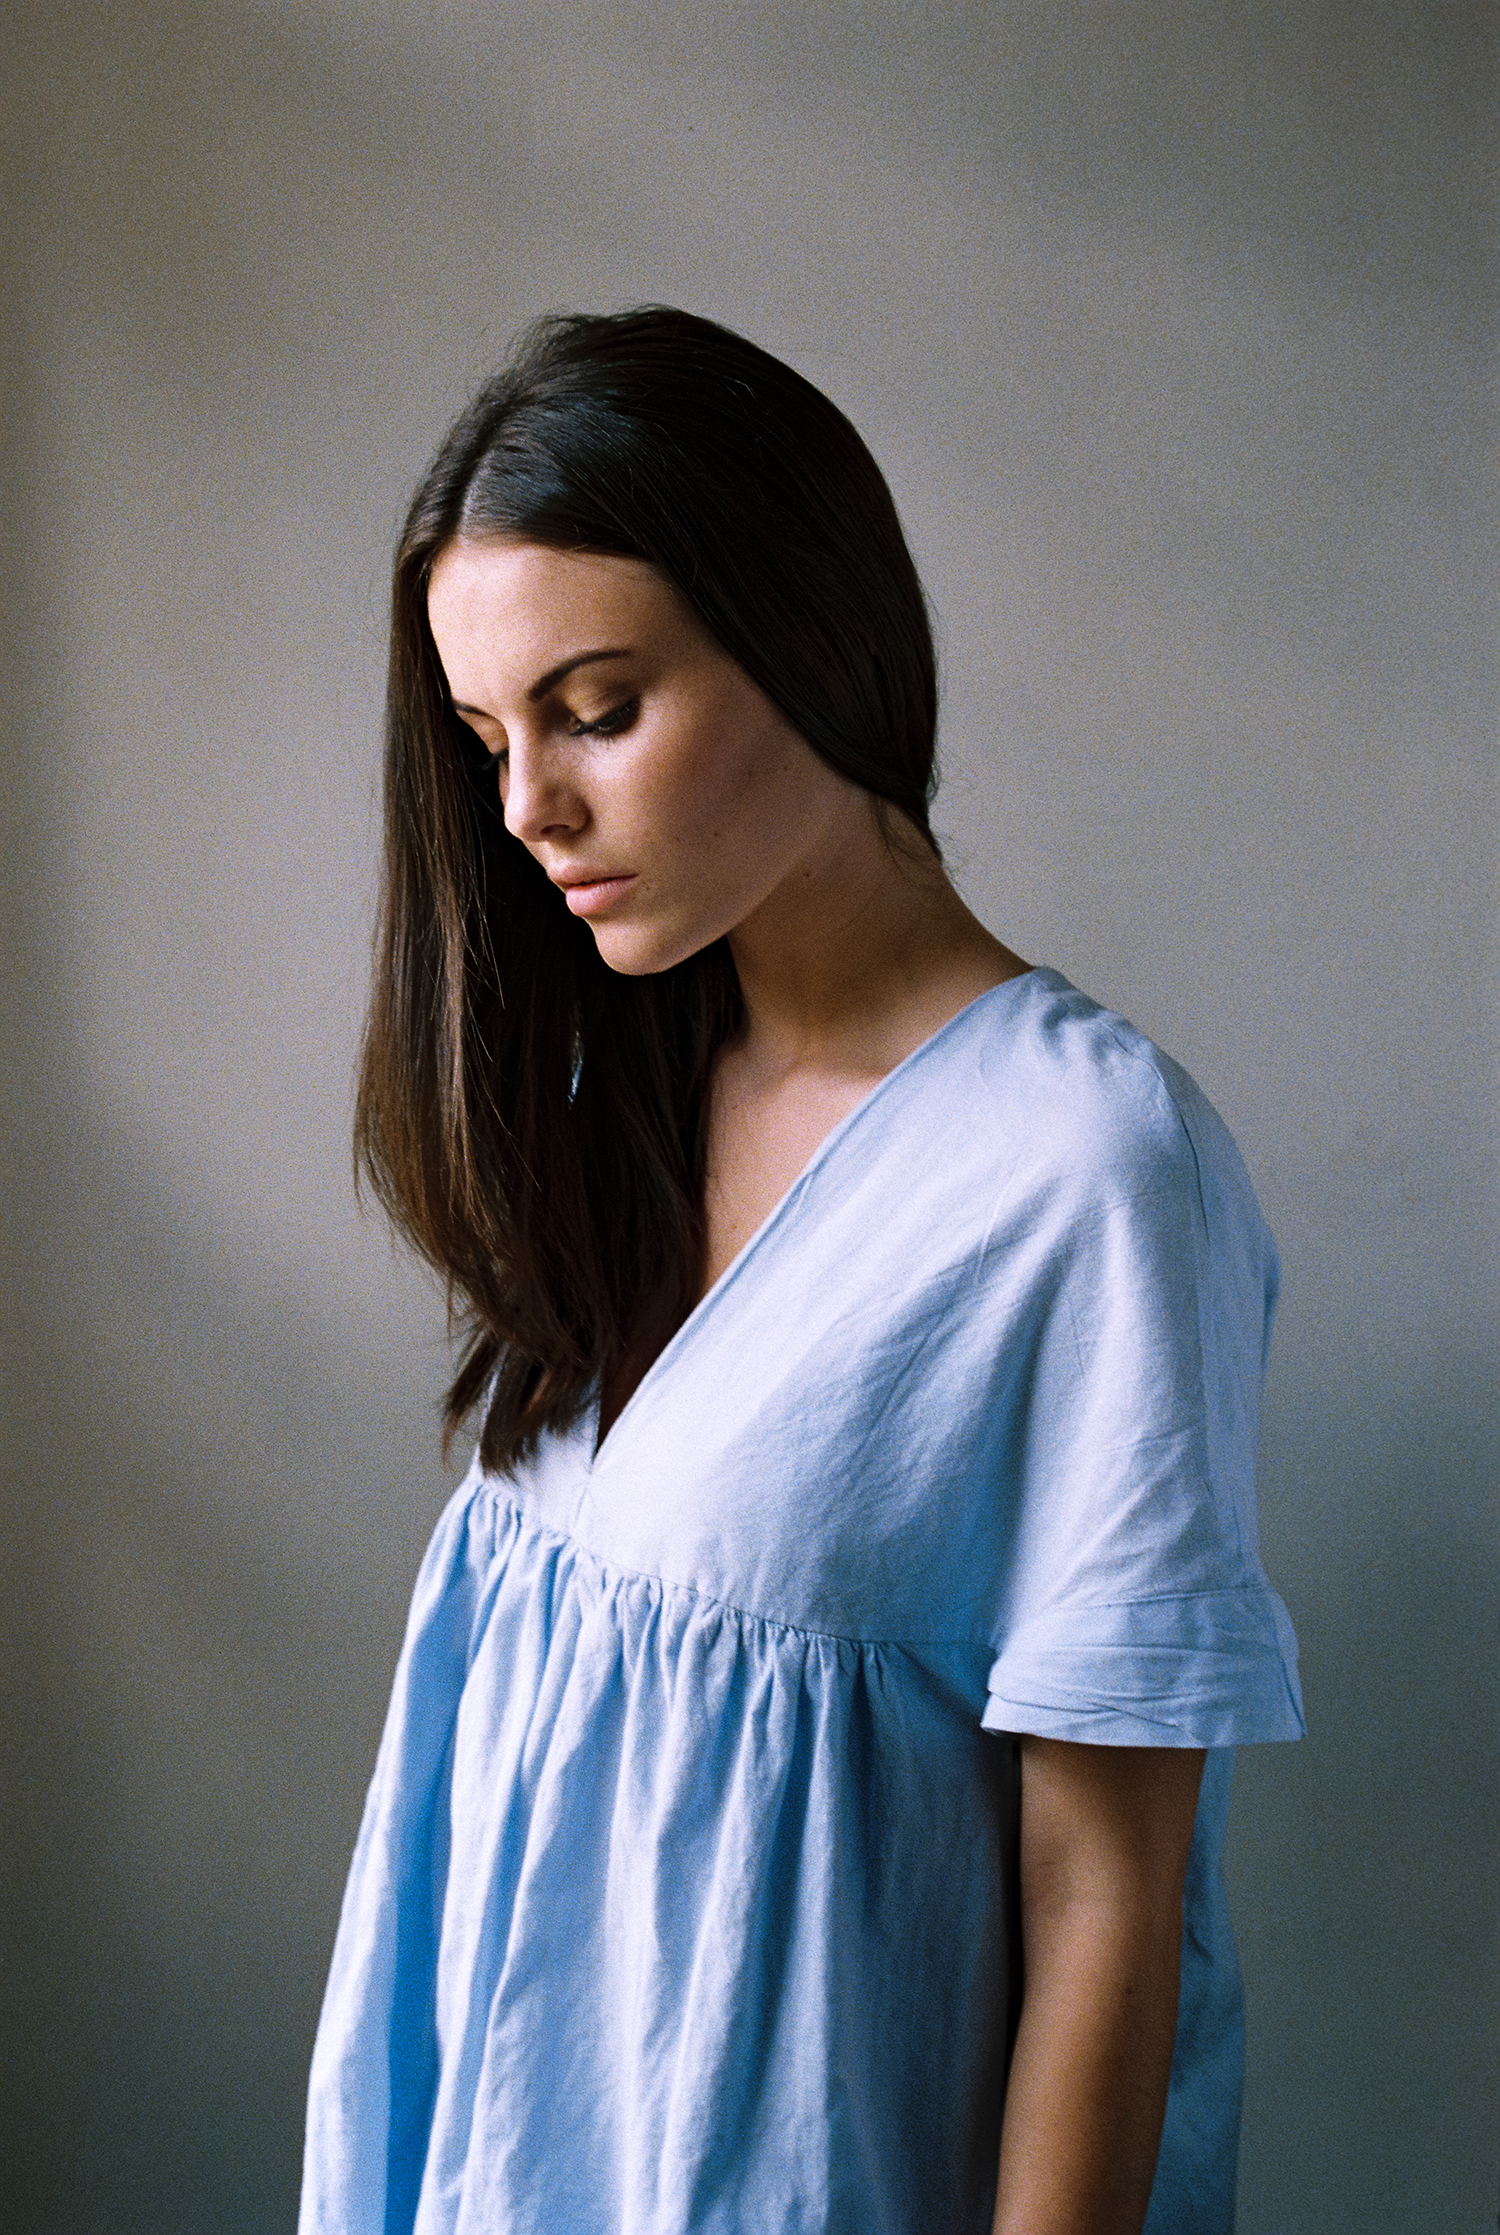 Model test session shot on Kodak Portra 400 film. By Dmitry Serostanov